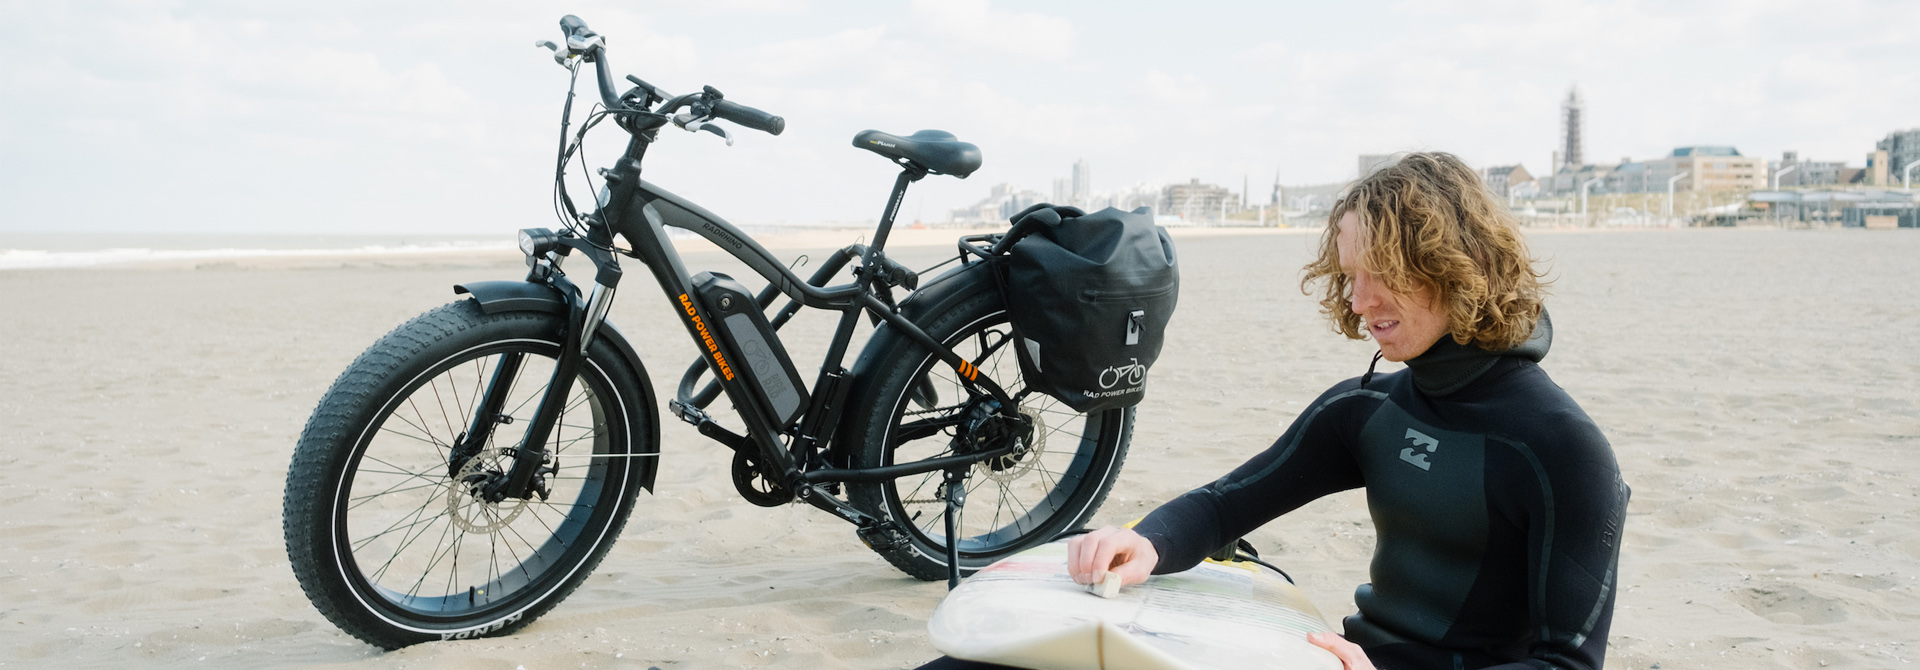 eBike Hire cycle route around the villages of Gwithian and Godrevy